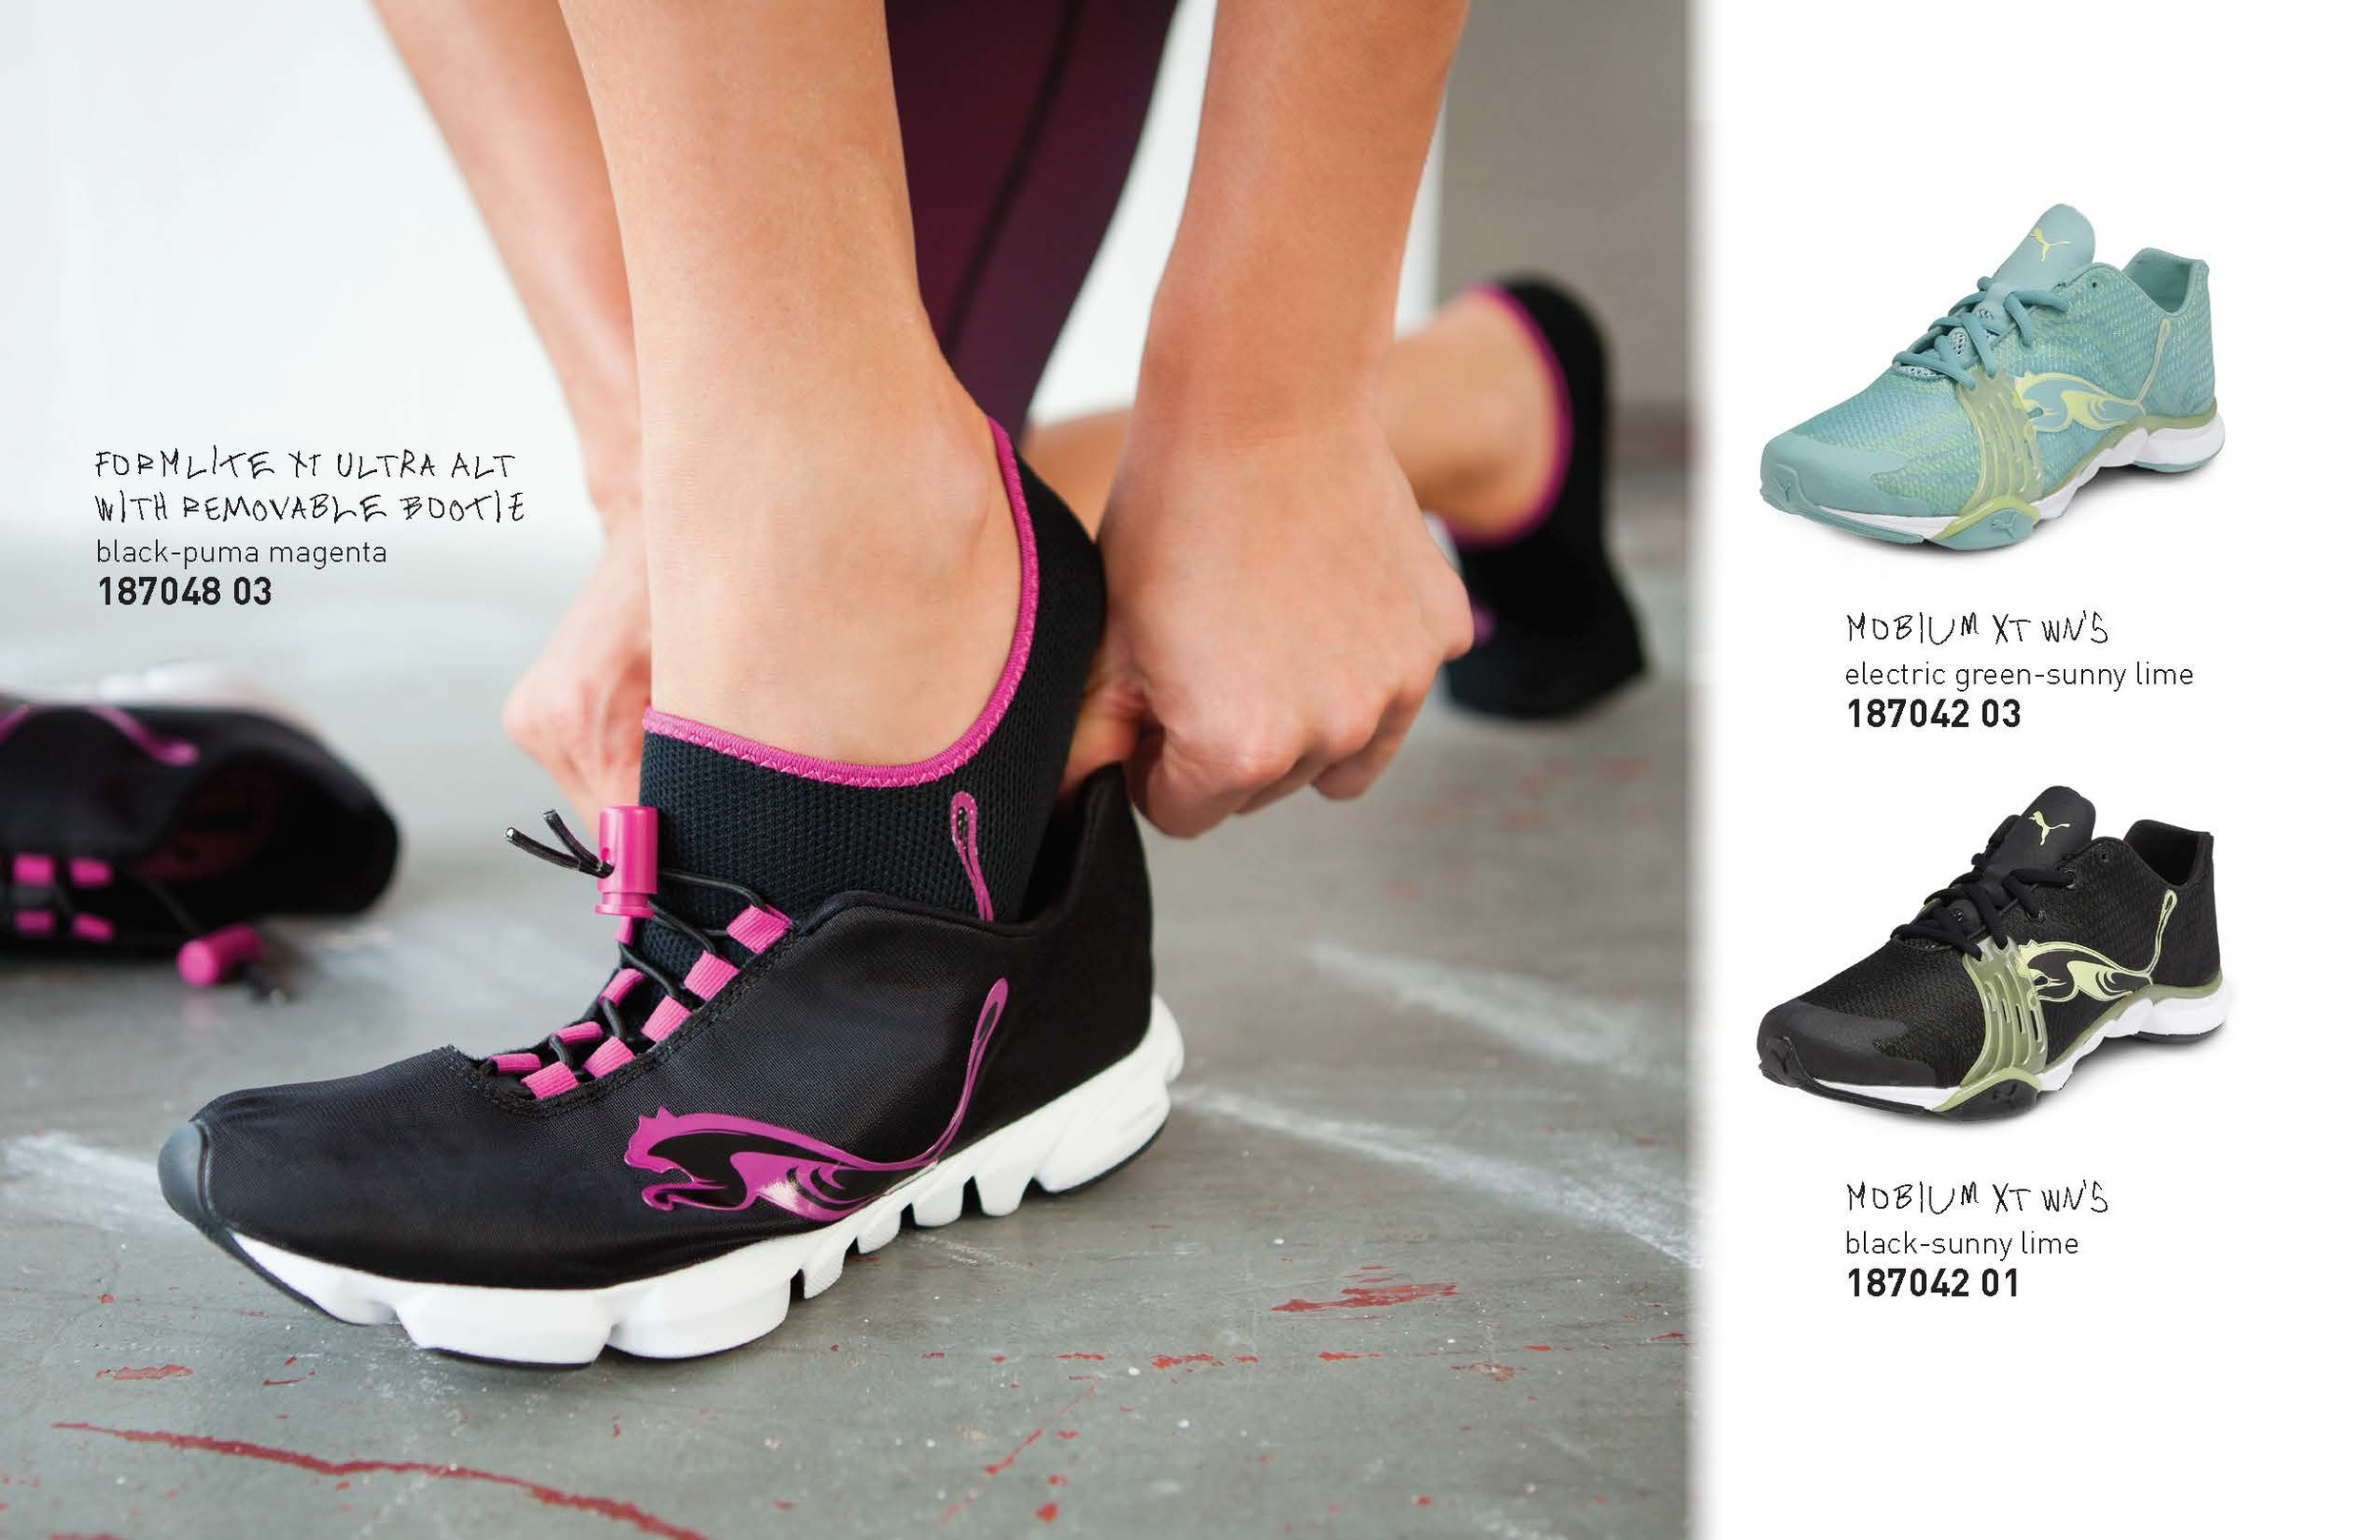 PUMA_booklet_7-30-13_HIRES_view_Page_12.jpg